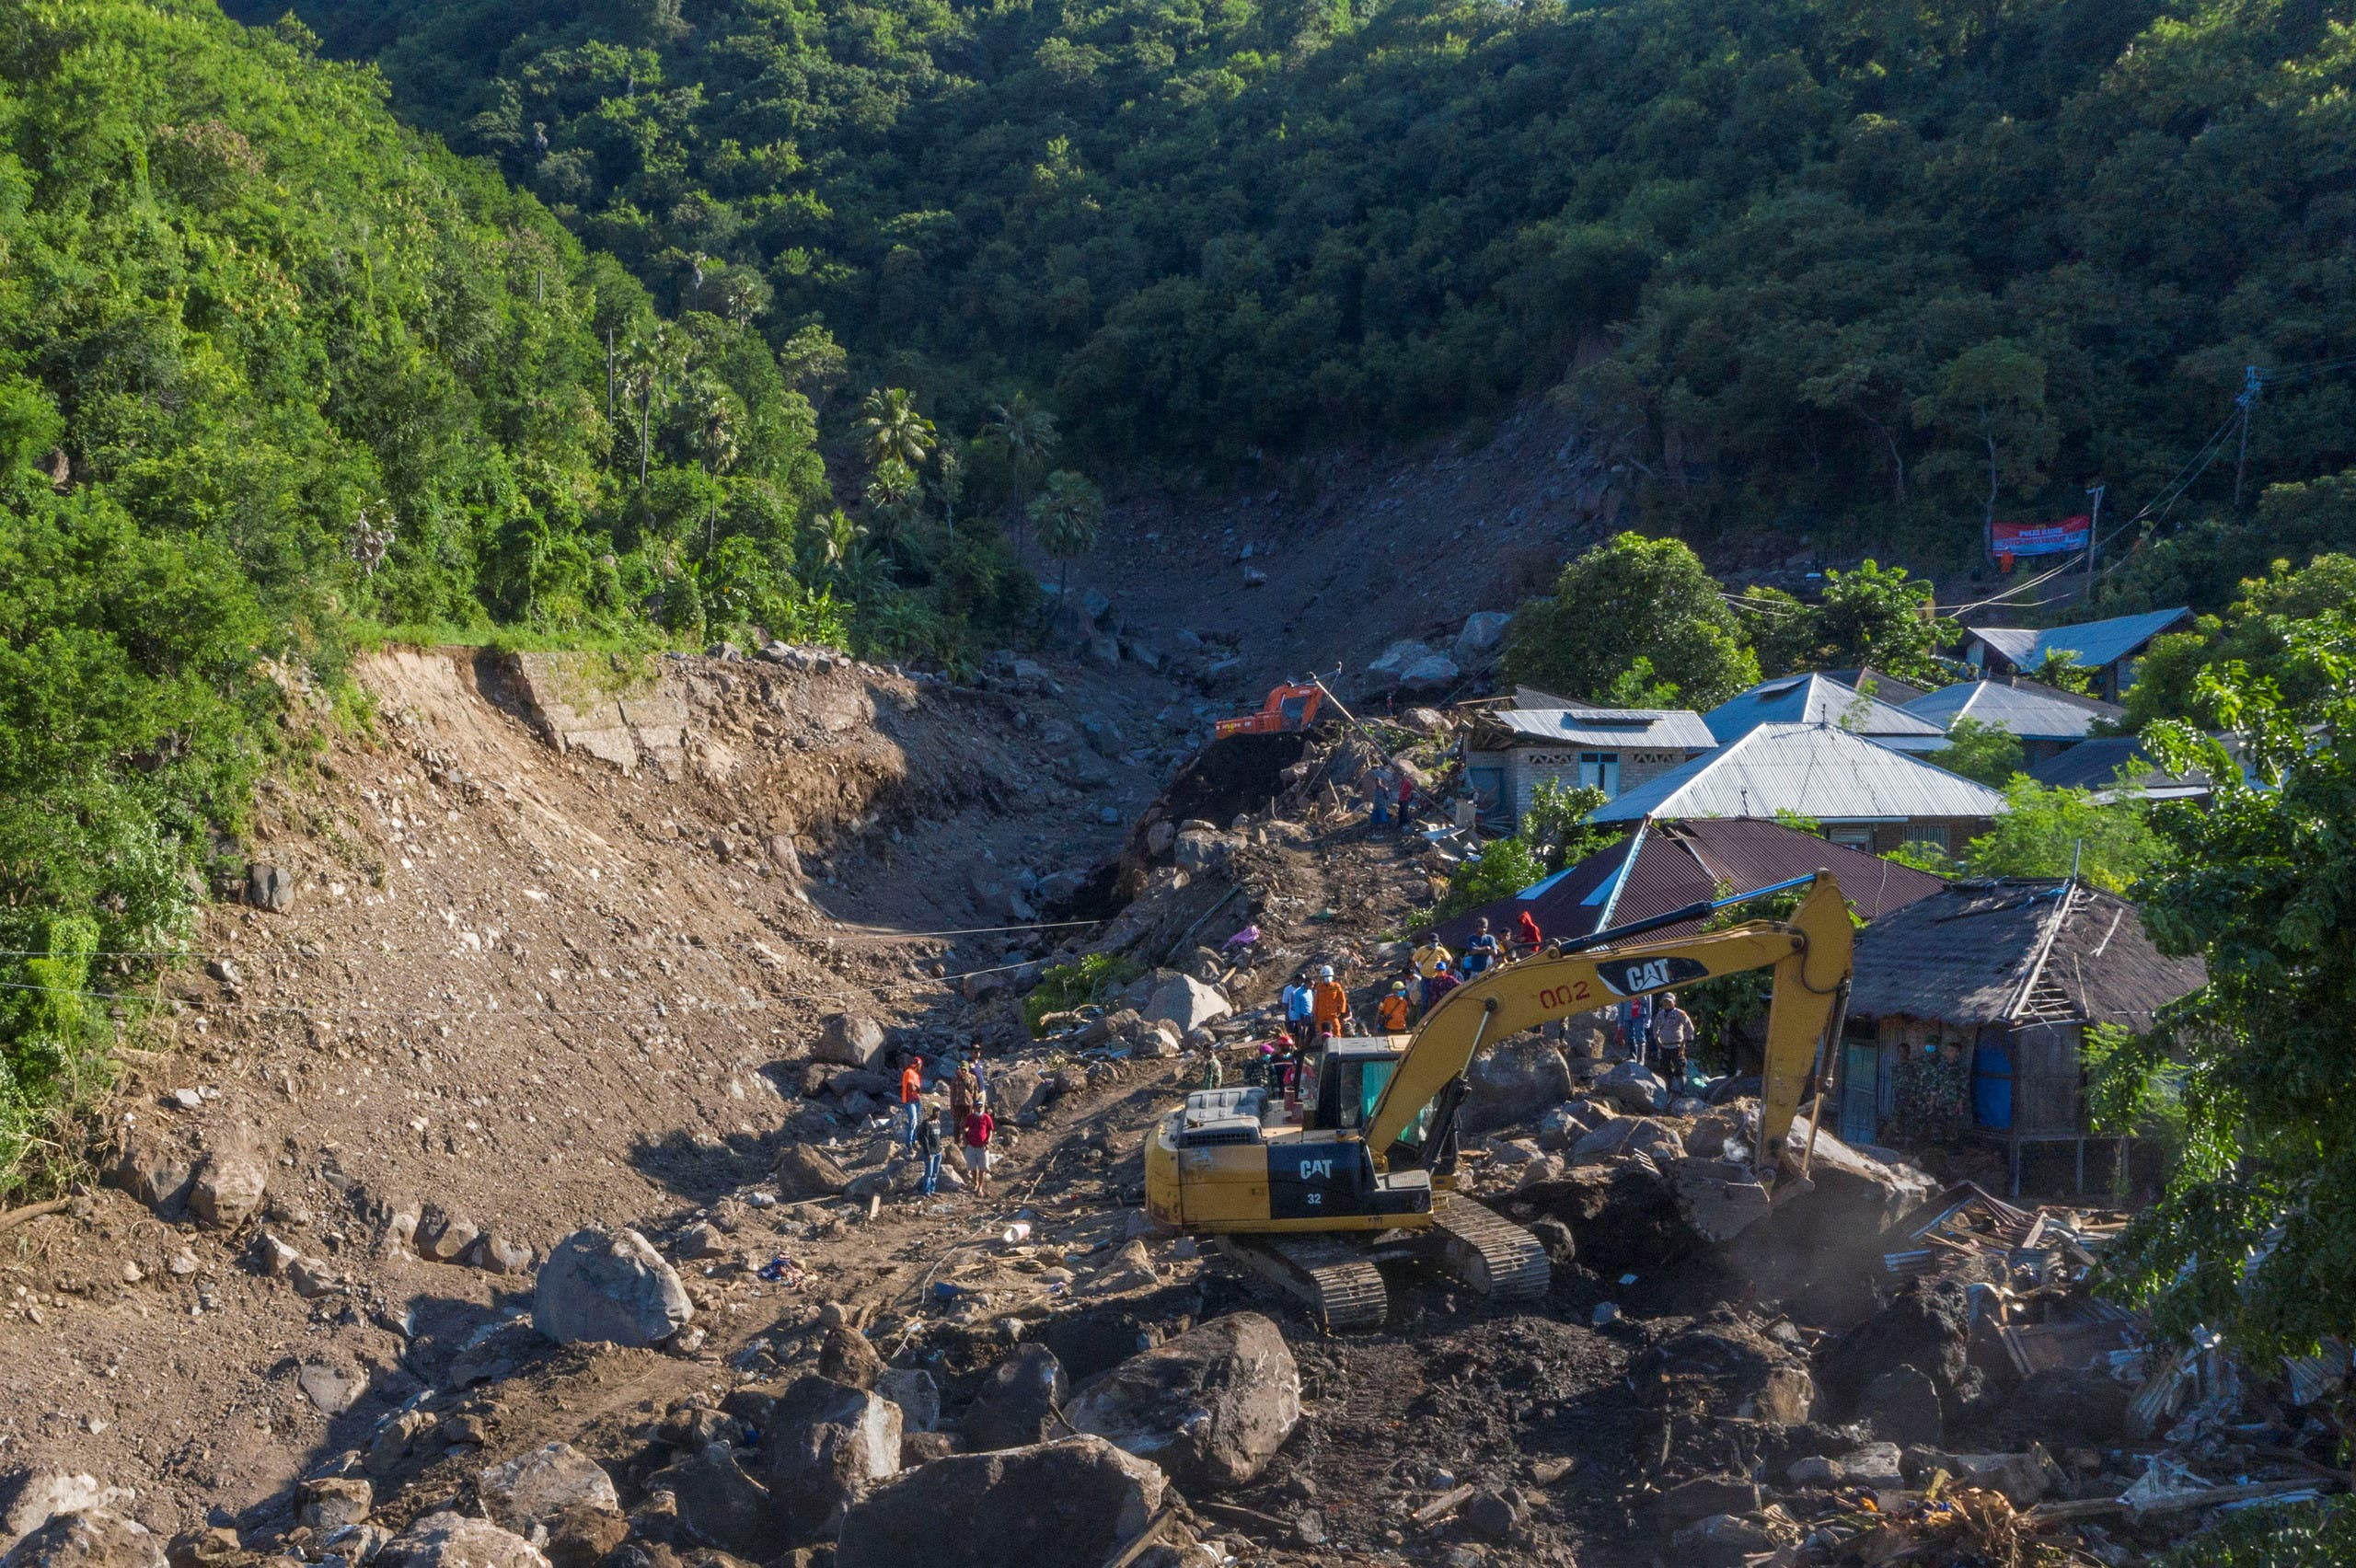 An aerial picture shows an excavator search for a body at an area affected by landslides triggered by tropical cyclone Seroja in Lembata, East Nusa Tenggara province, Indonesia April 10, 2021. (Reuters)